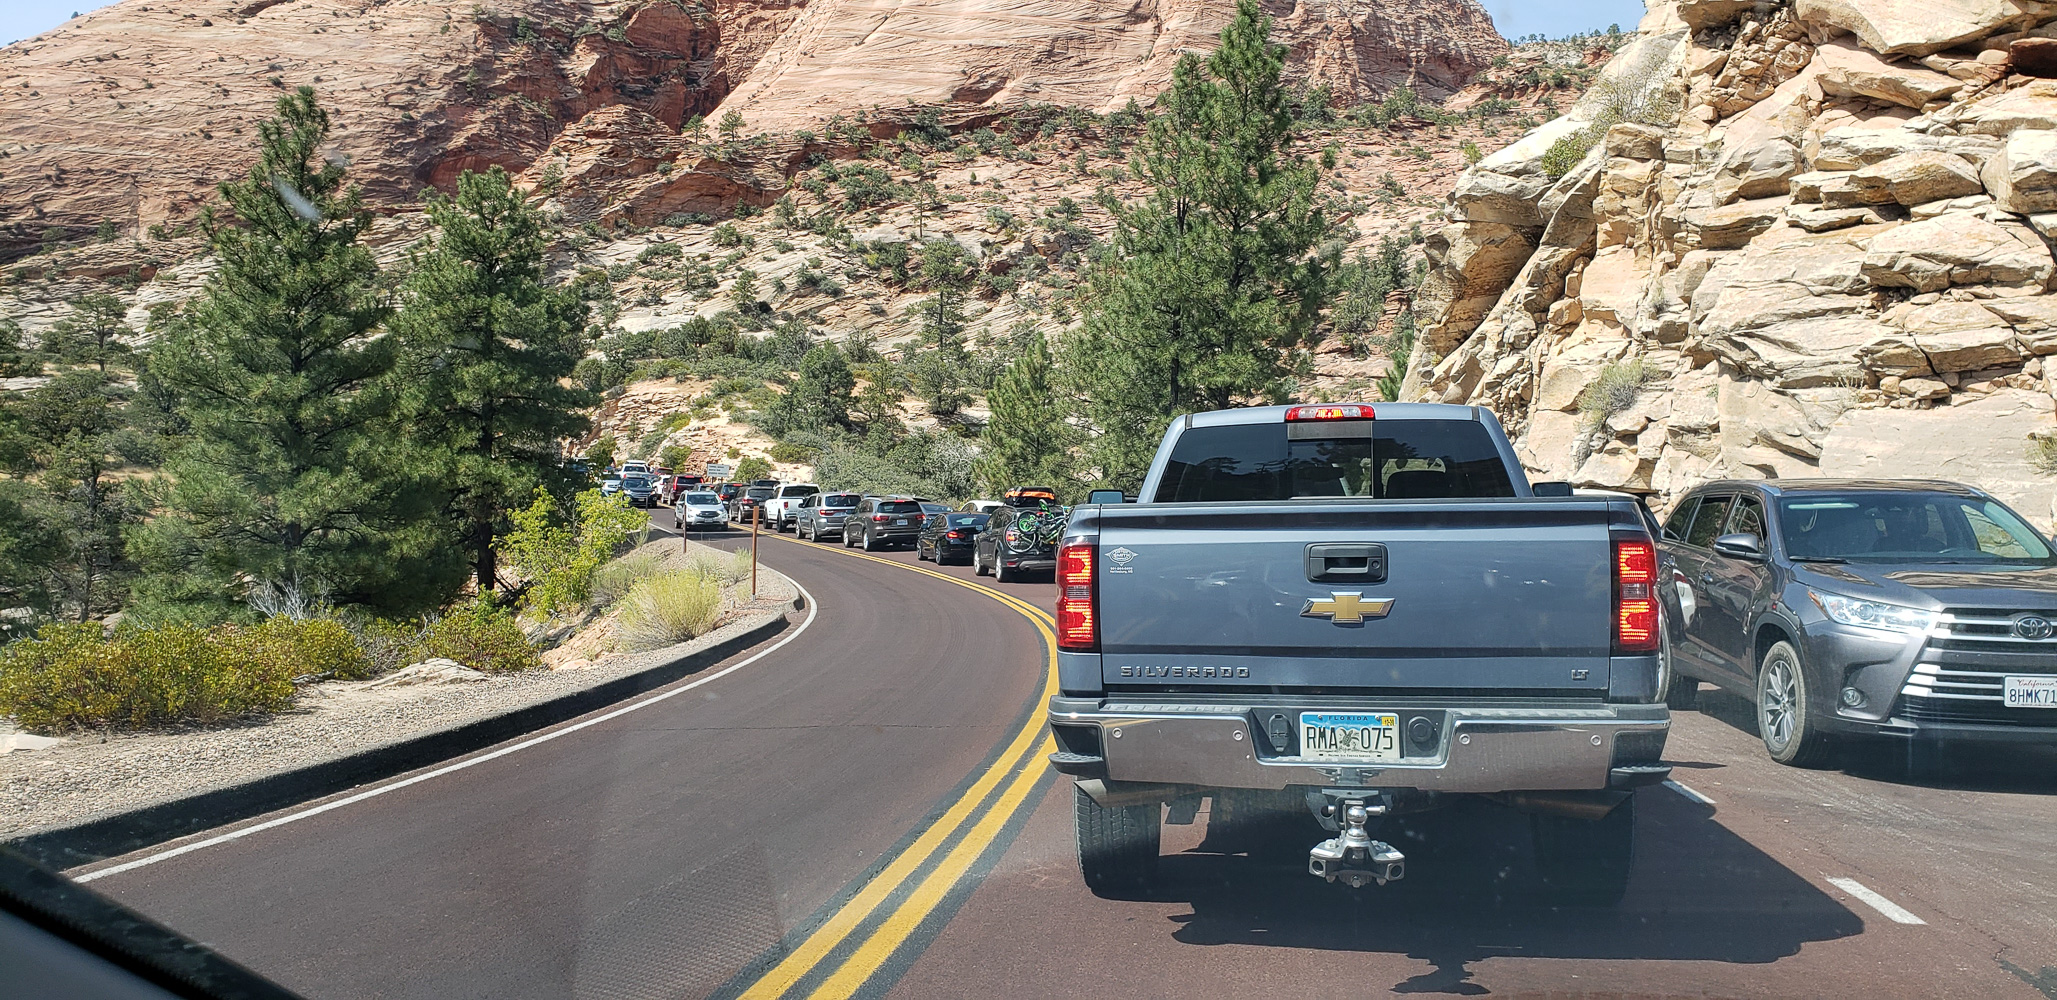 Traffic getting into the Zion-Mt Carmel tunnel to enter Zion National Park